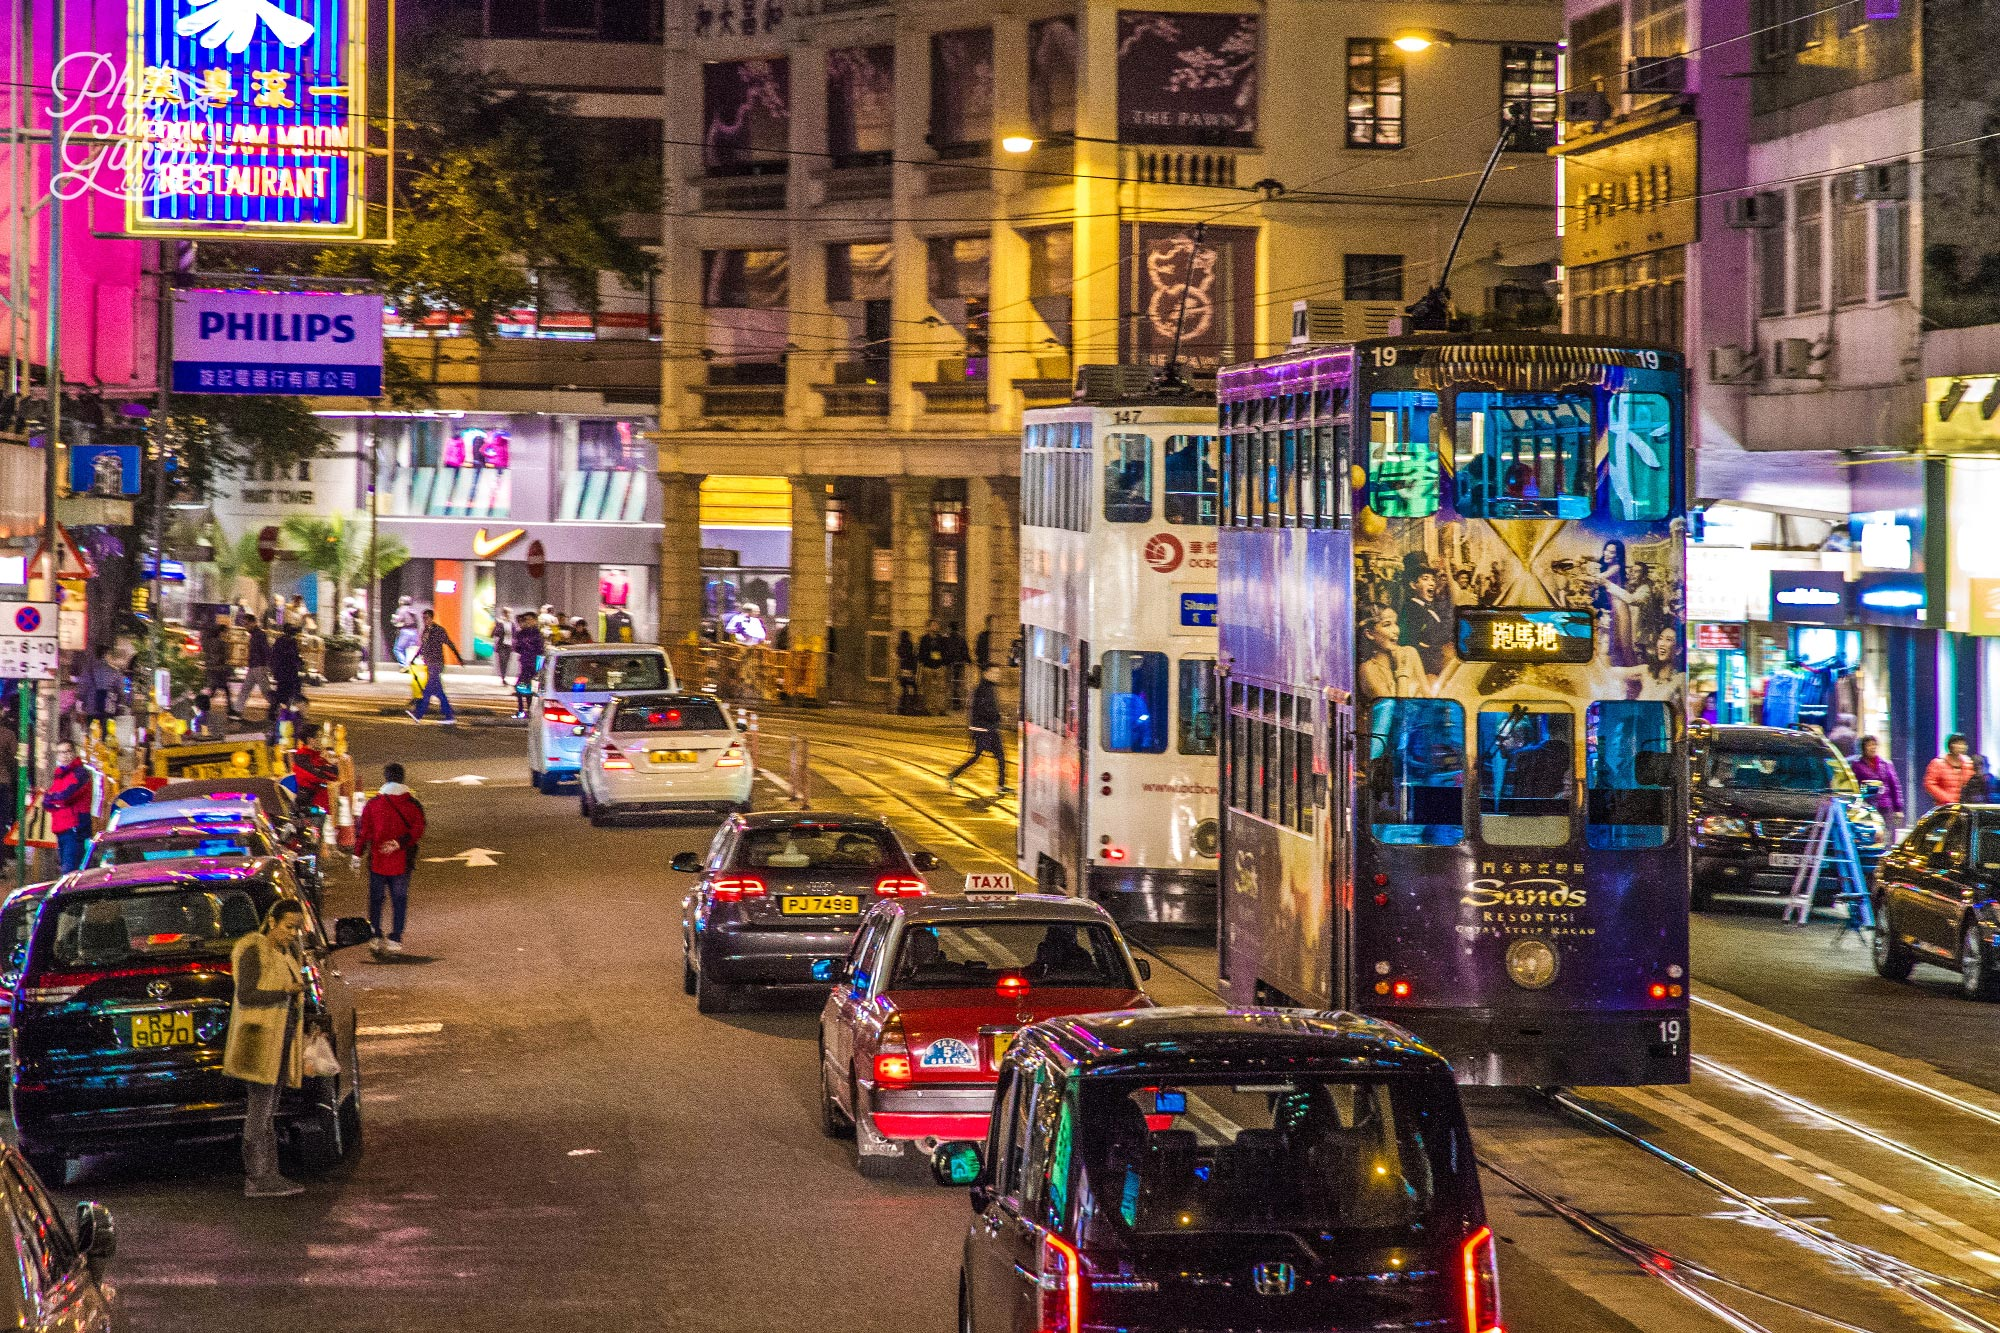 Hong Kong's iconic tall trams, just like the ones in the Harry Potter movies